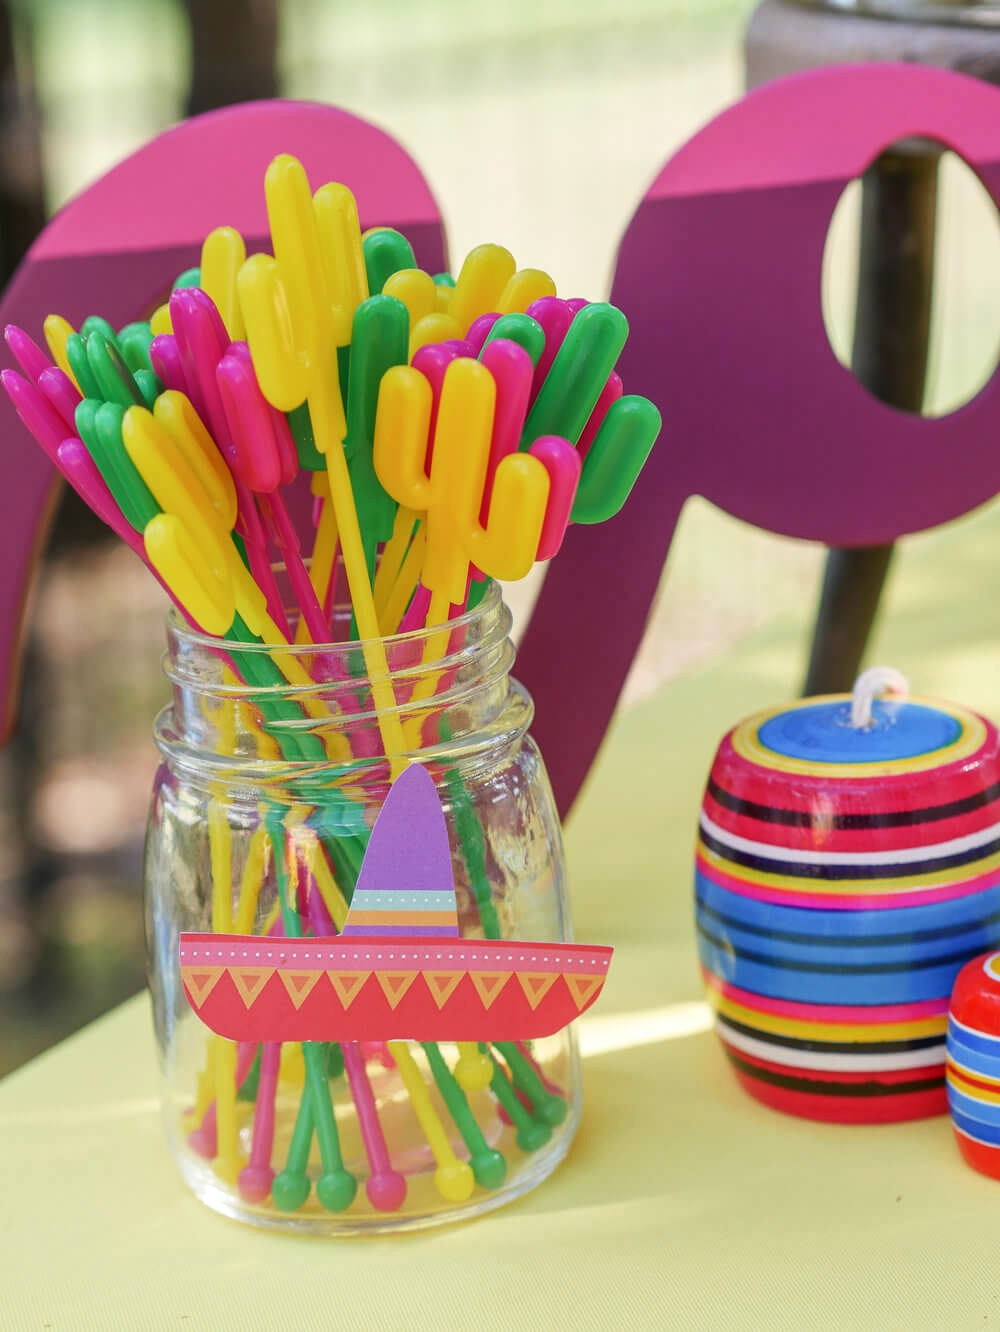 Cactus beverage stir sticks, paper sombrero, and traditional Mexican decor add the finishing touches to this fiesta themed birthday party. Styling by Austin Texas party planner Mint Event Design www.minteventdesign.com #kidsbirthdayparty #fiestaparty #disneycoco #partyideas #girlbirthdayparty #cocobirthdayparty